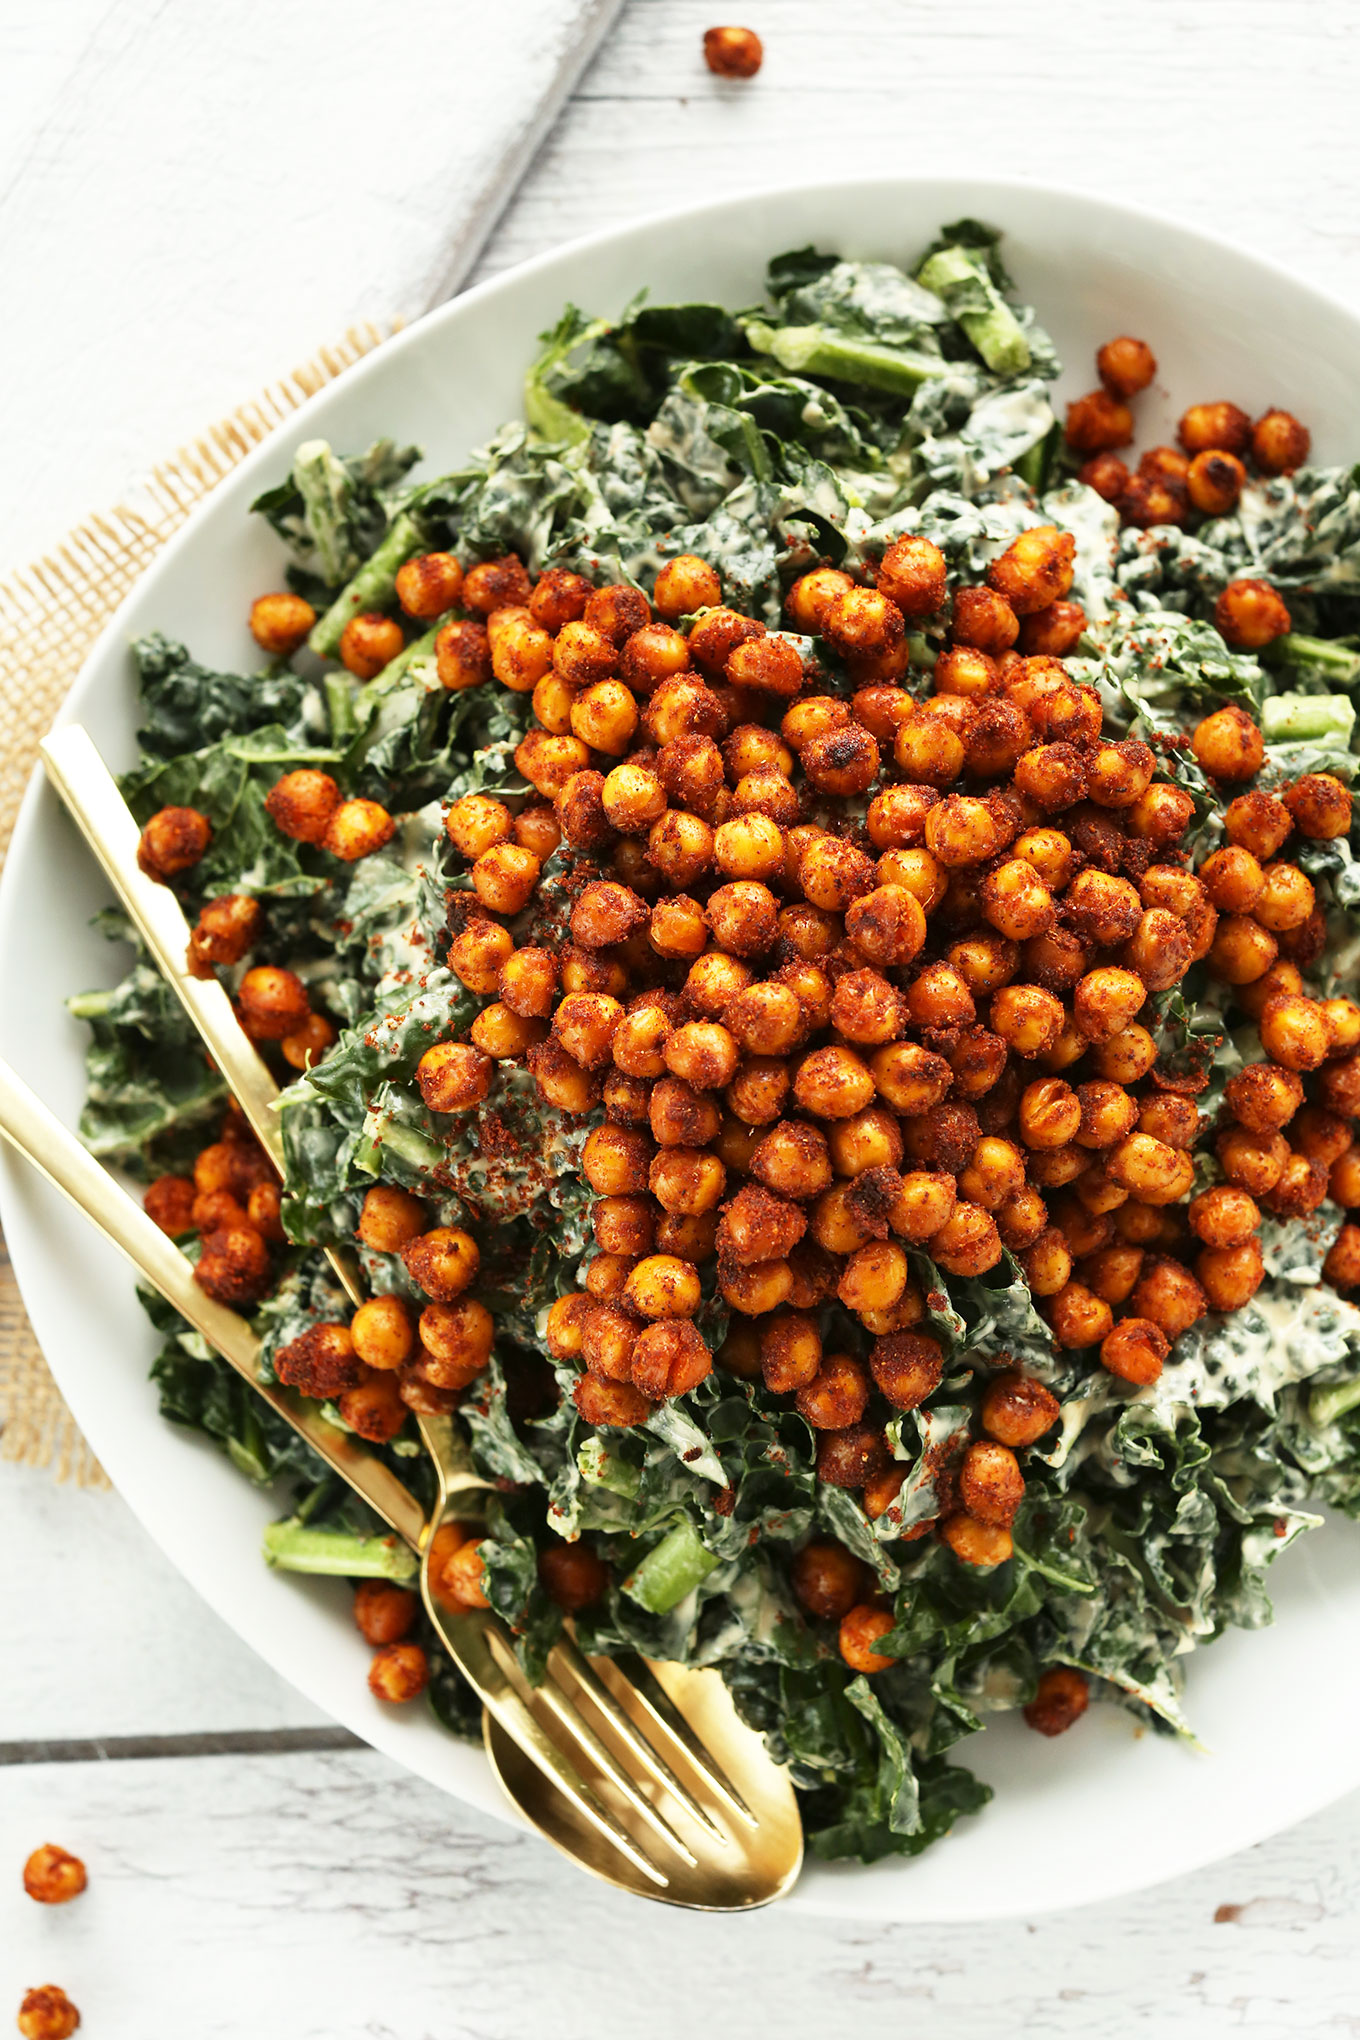 Garlicky Kale Salad with Tandoori Chickpeas from Minimalist Baker on foodiecrush.com